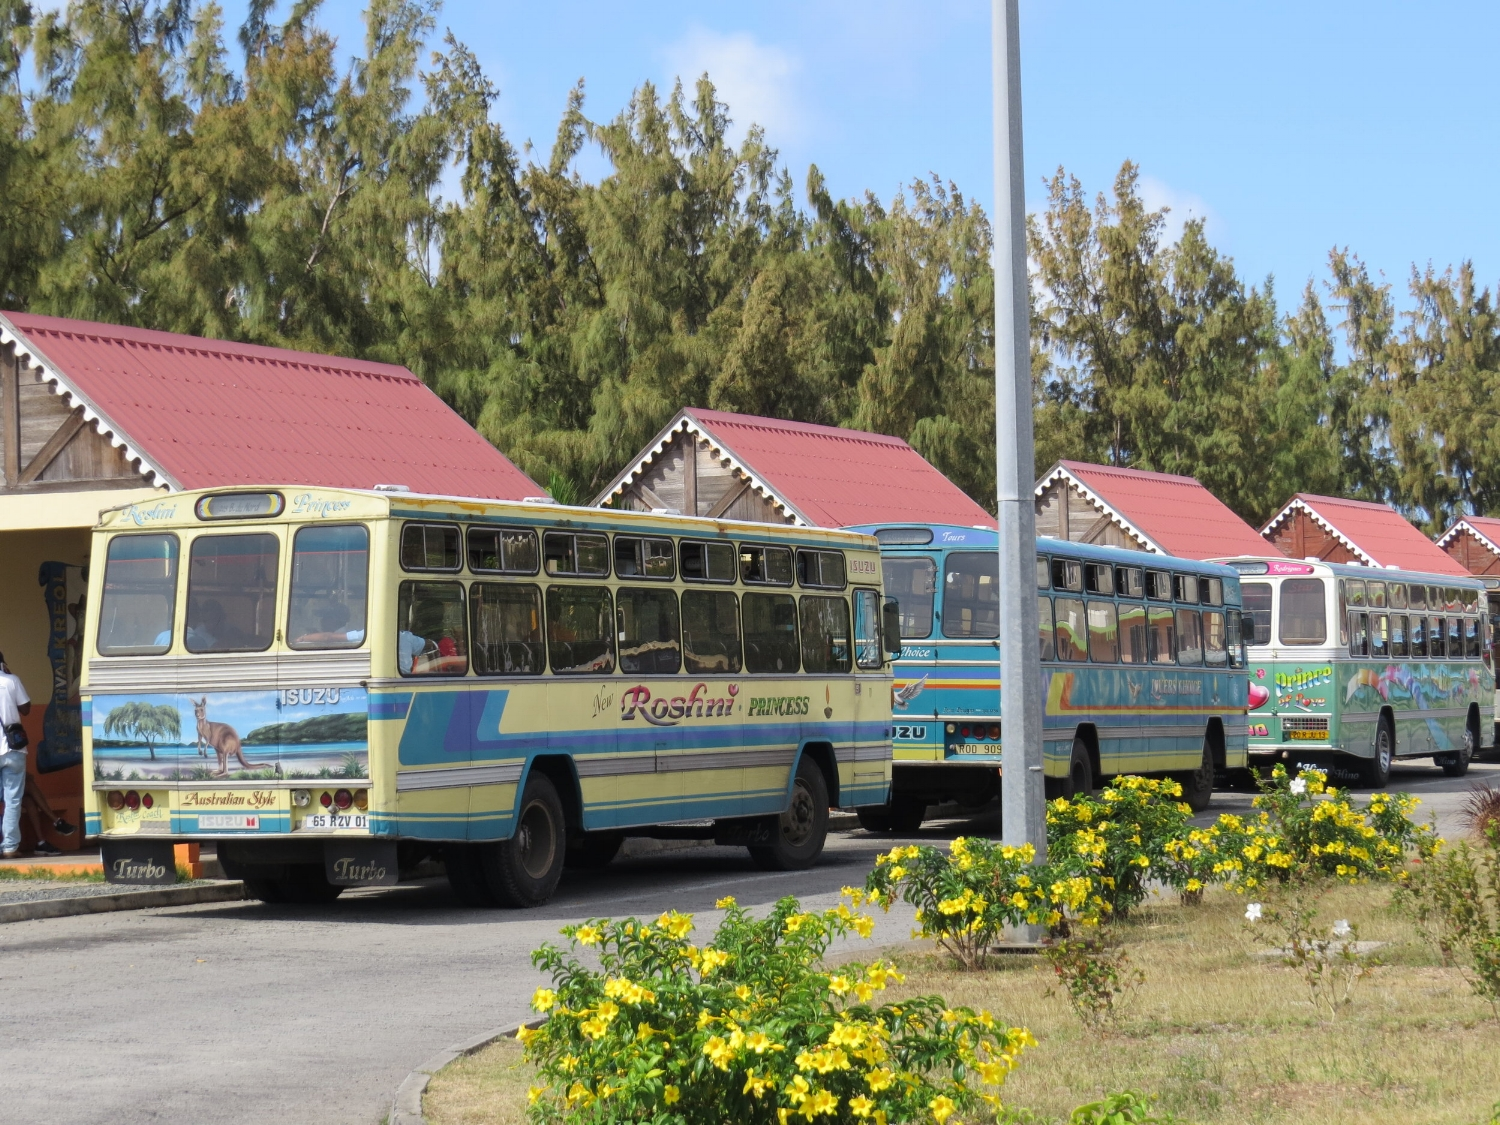 The buses are old and colorful.